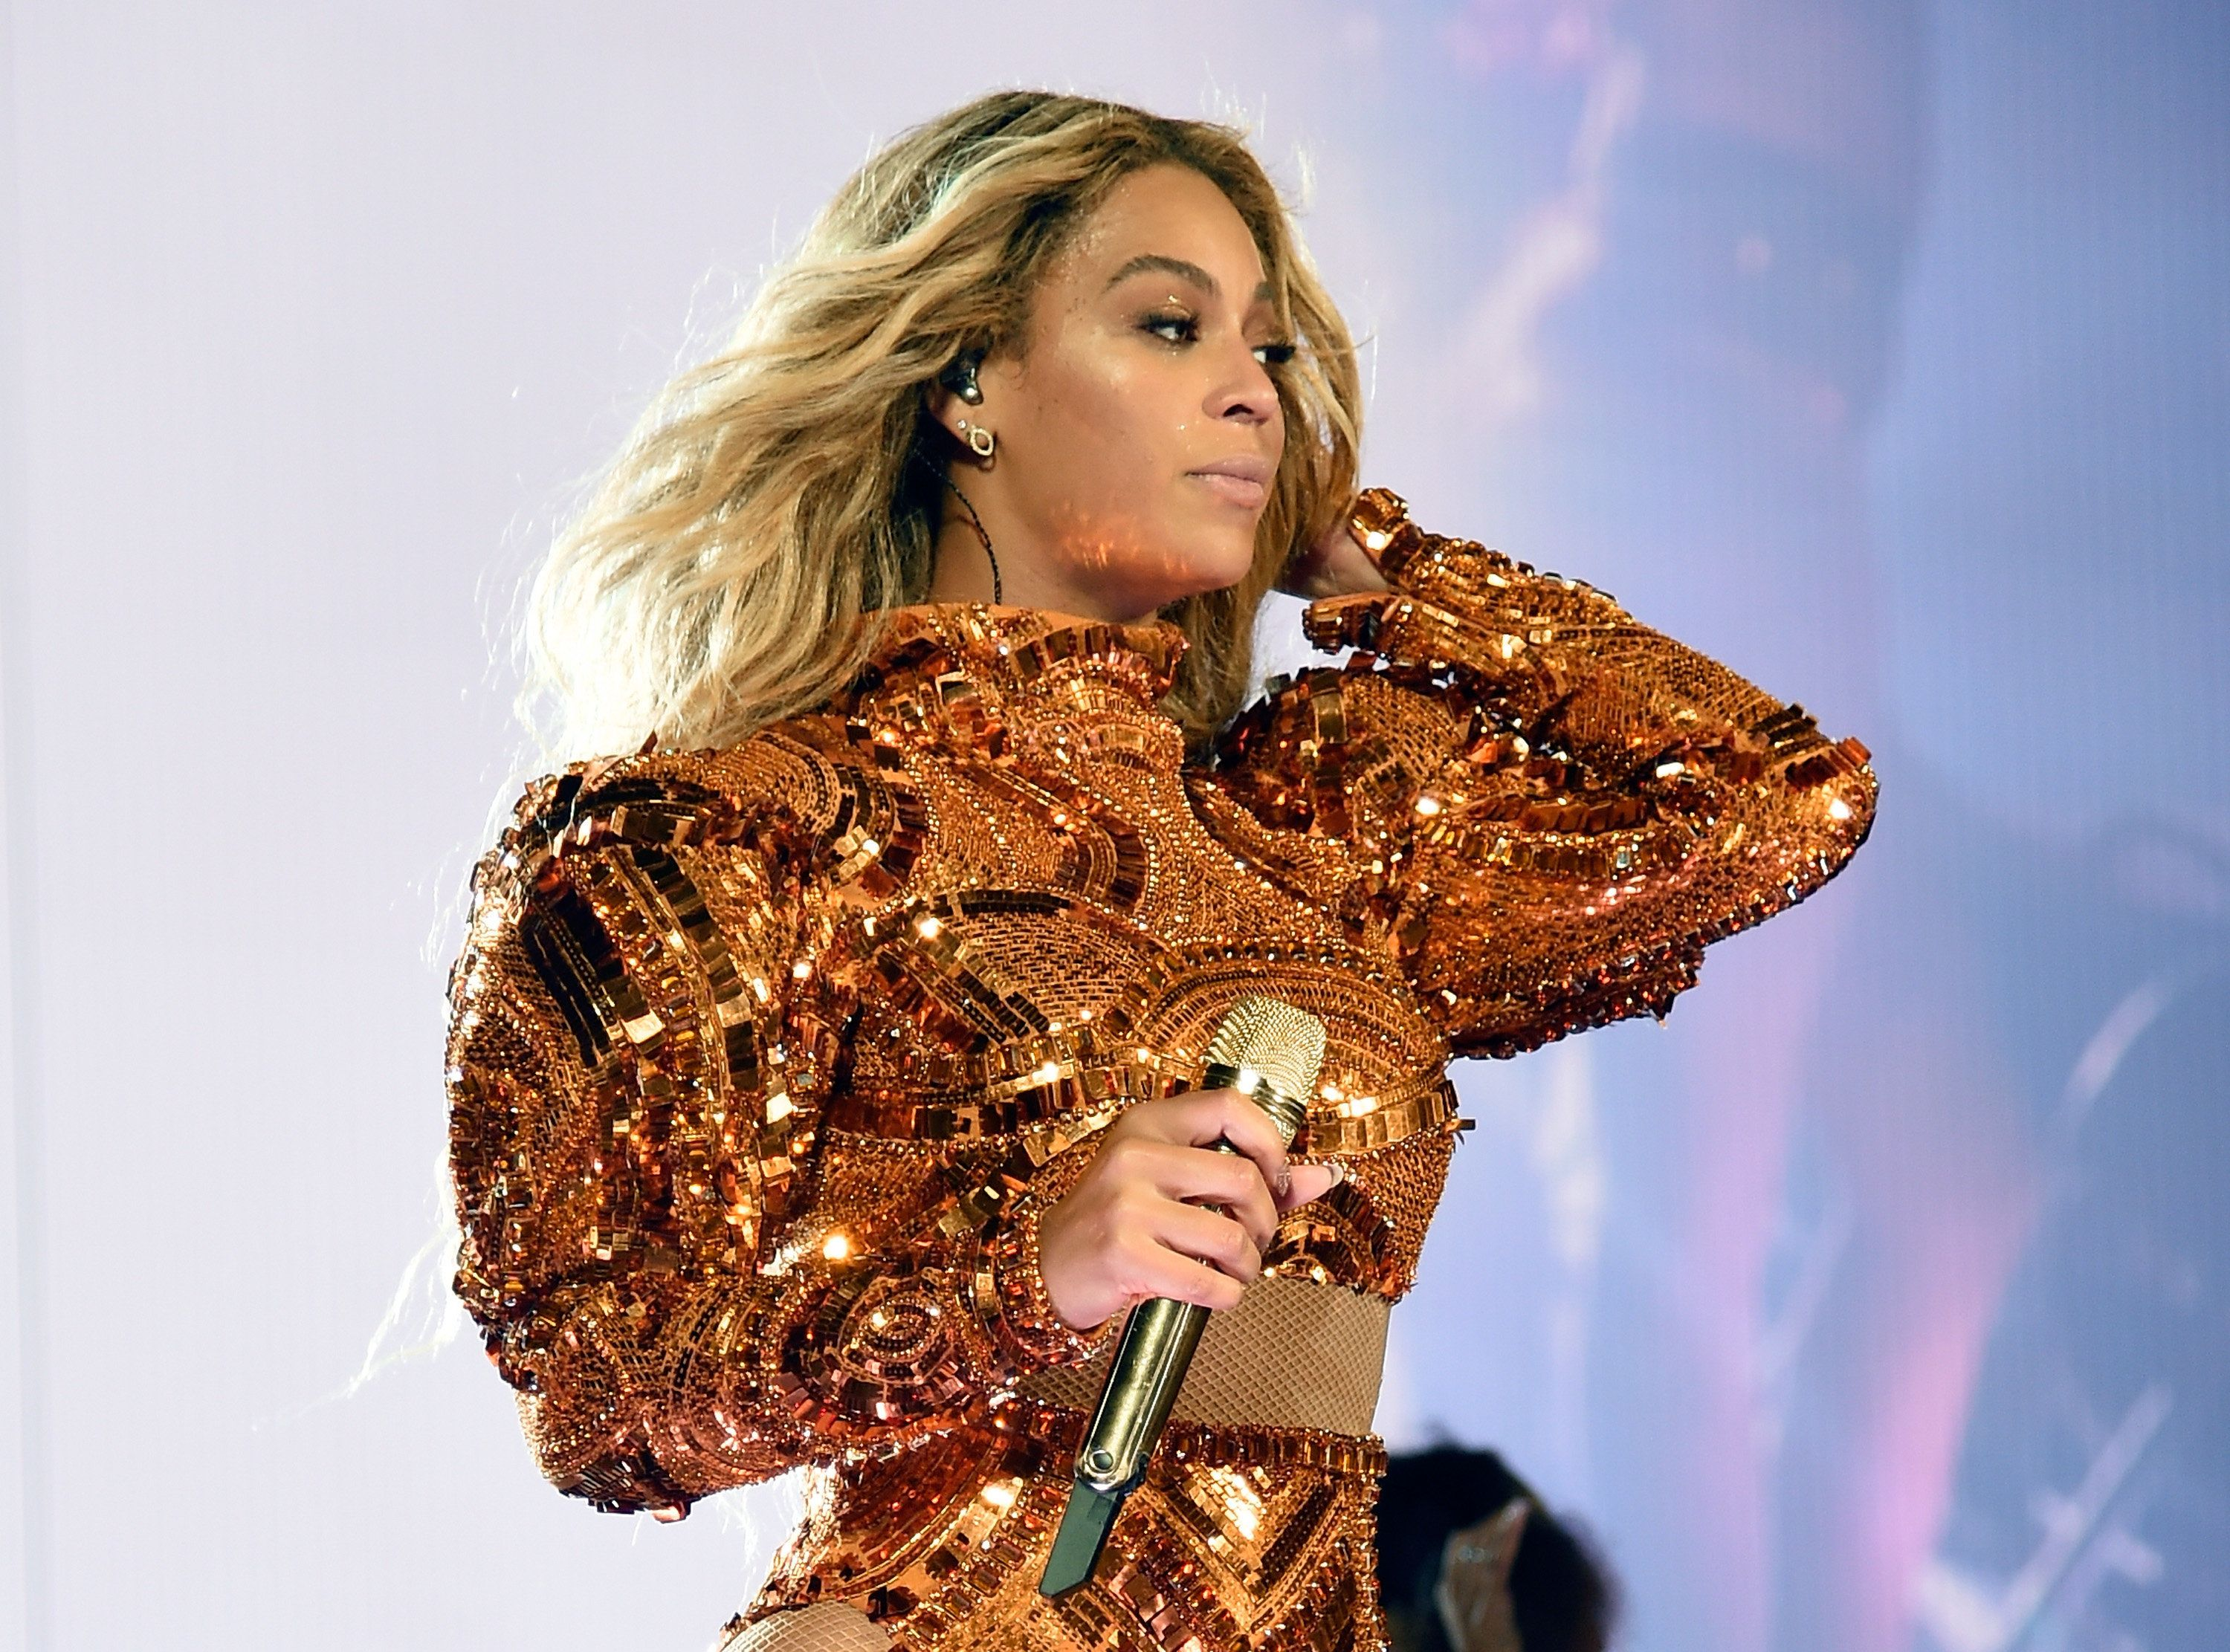 PASADENA, CA - MAY 14:  Entertainer Beyonce performs onstage during 'The Formation World Tour' at the Rose Bowl on May 14, 2016 in Pasadena, California.  (Photo by Kevin Mazur/WireImage )